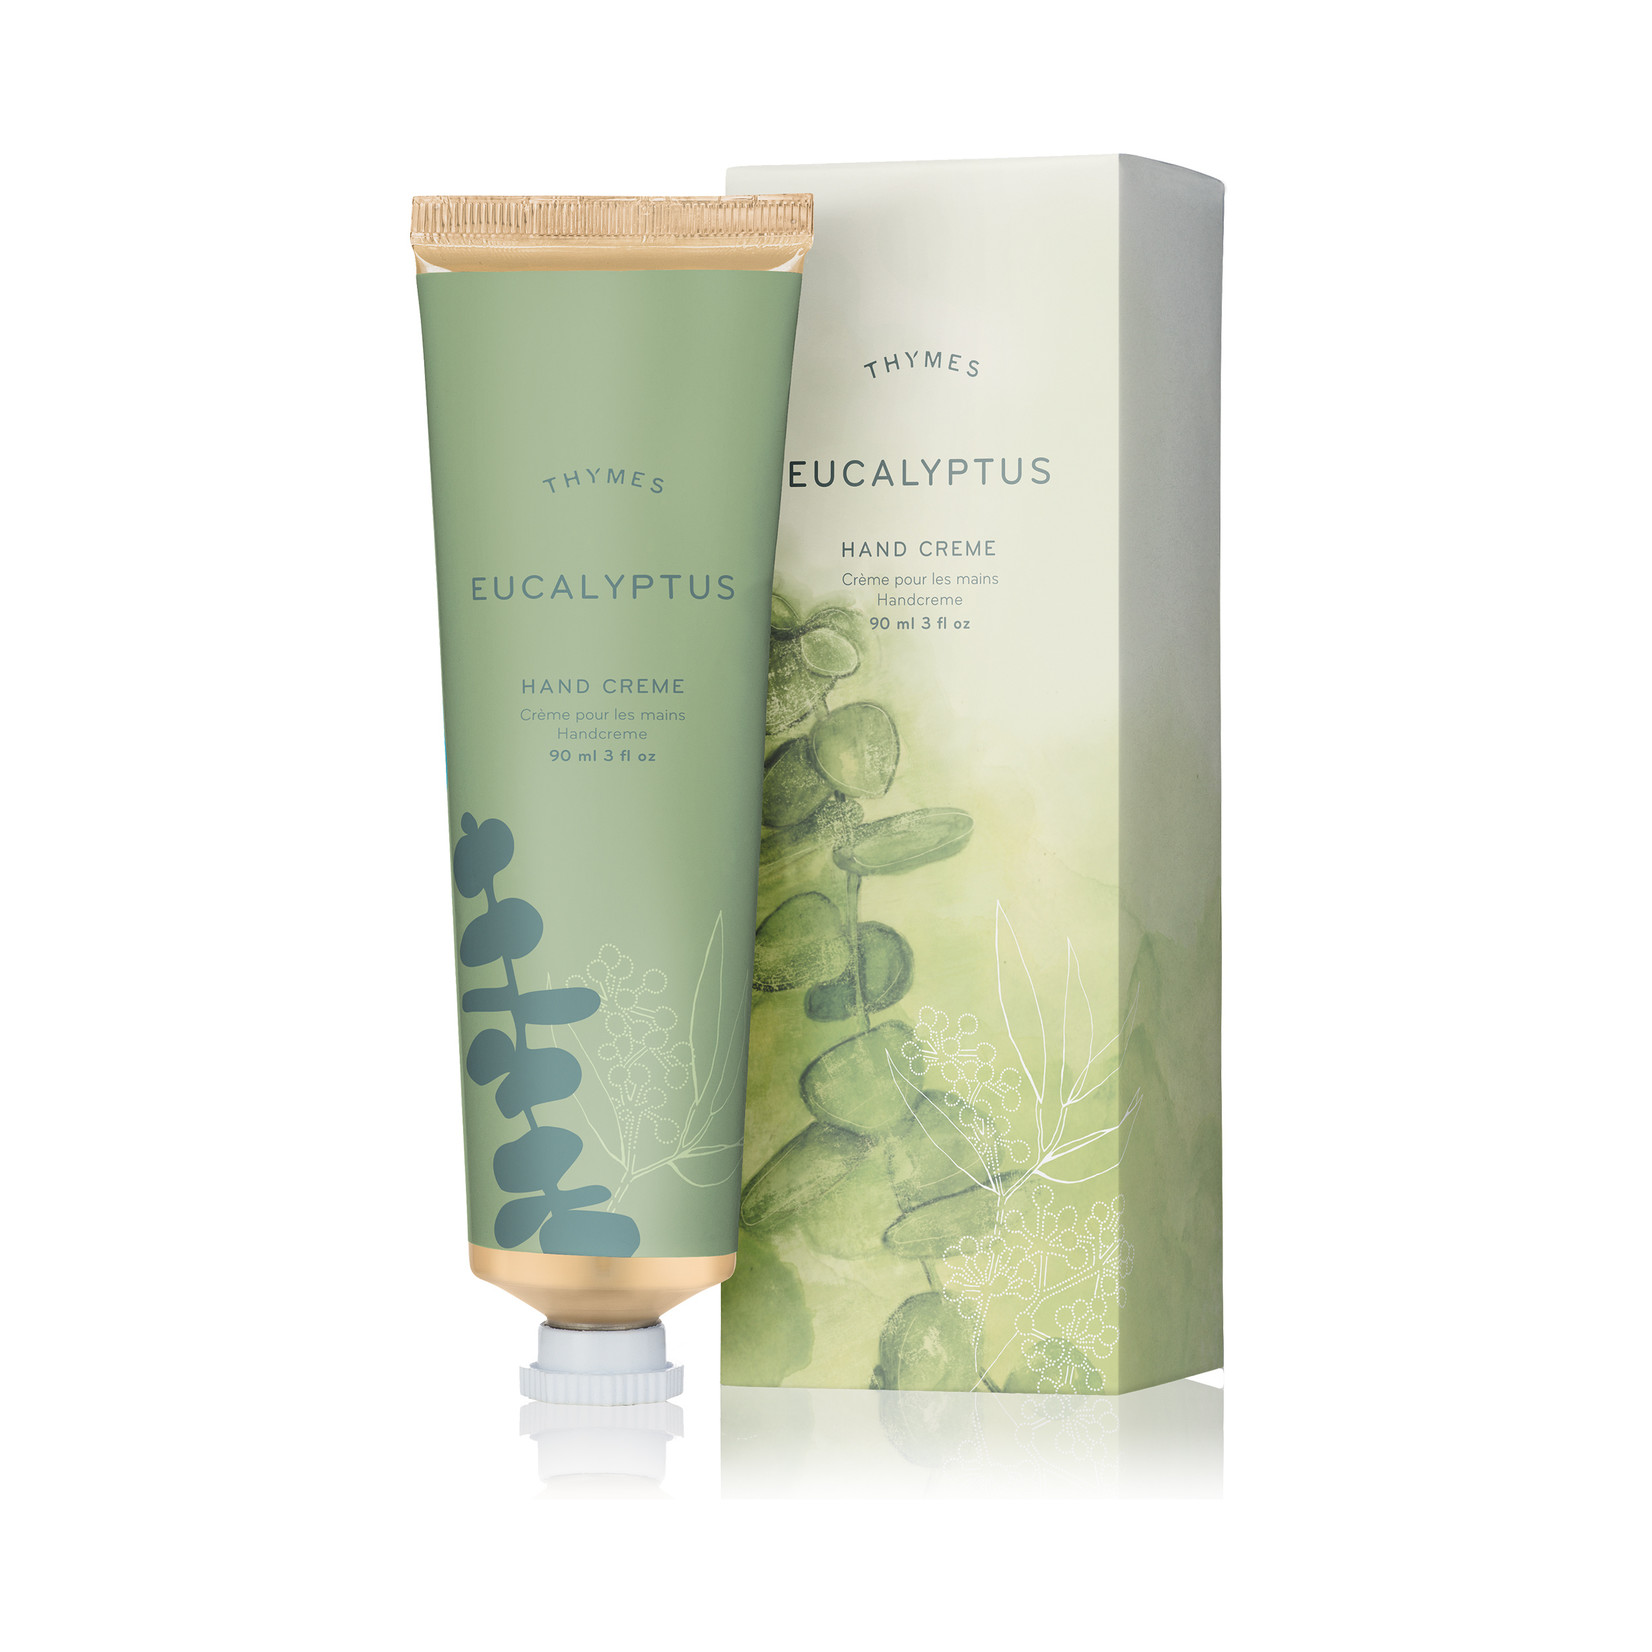 Thymes Hand Creme